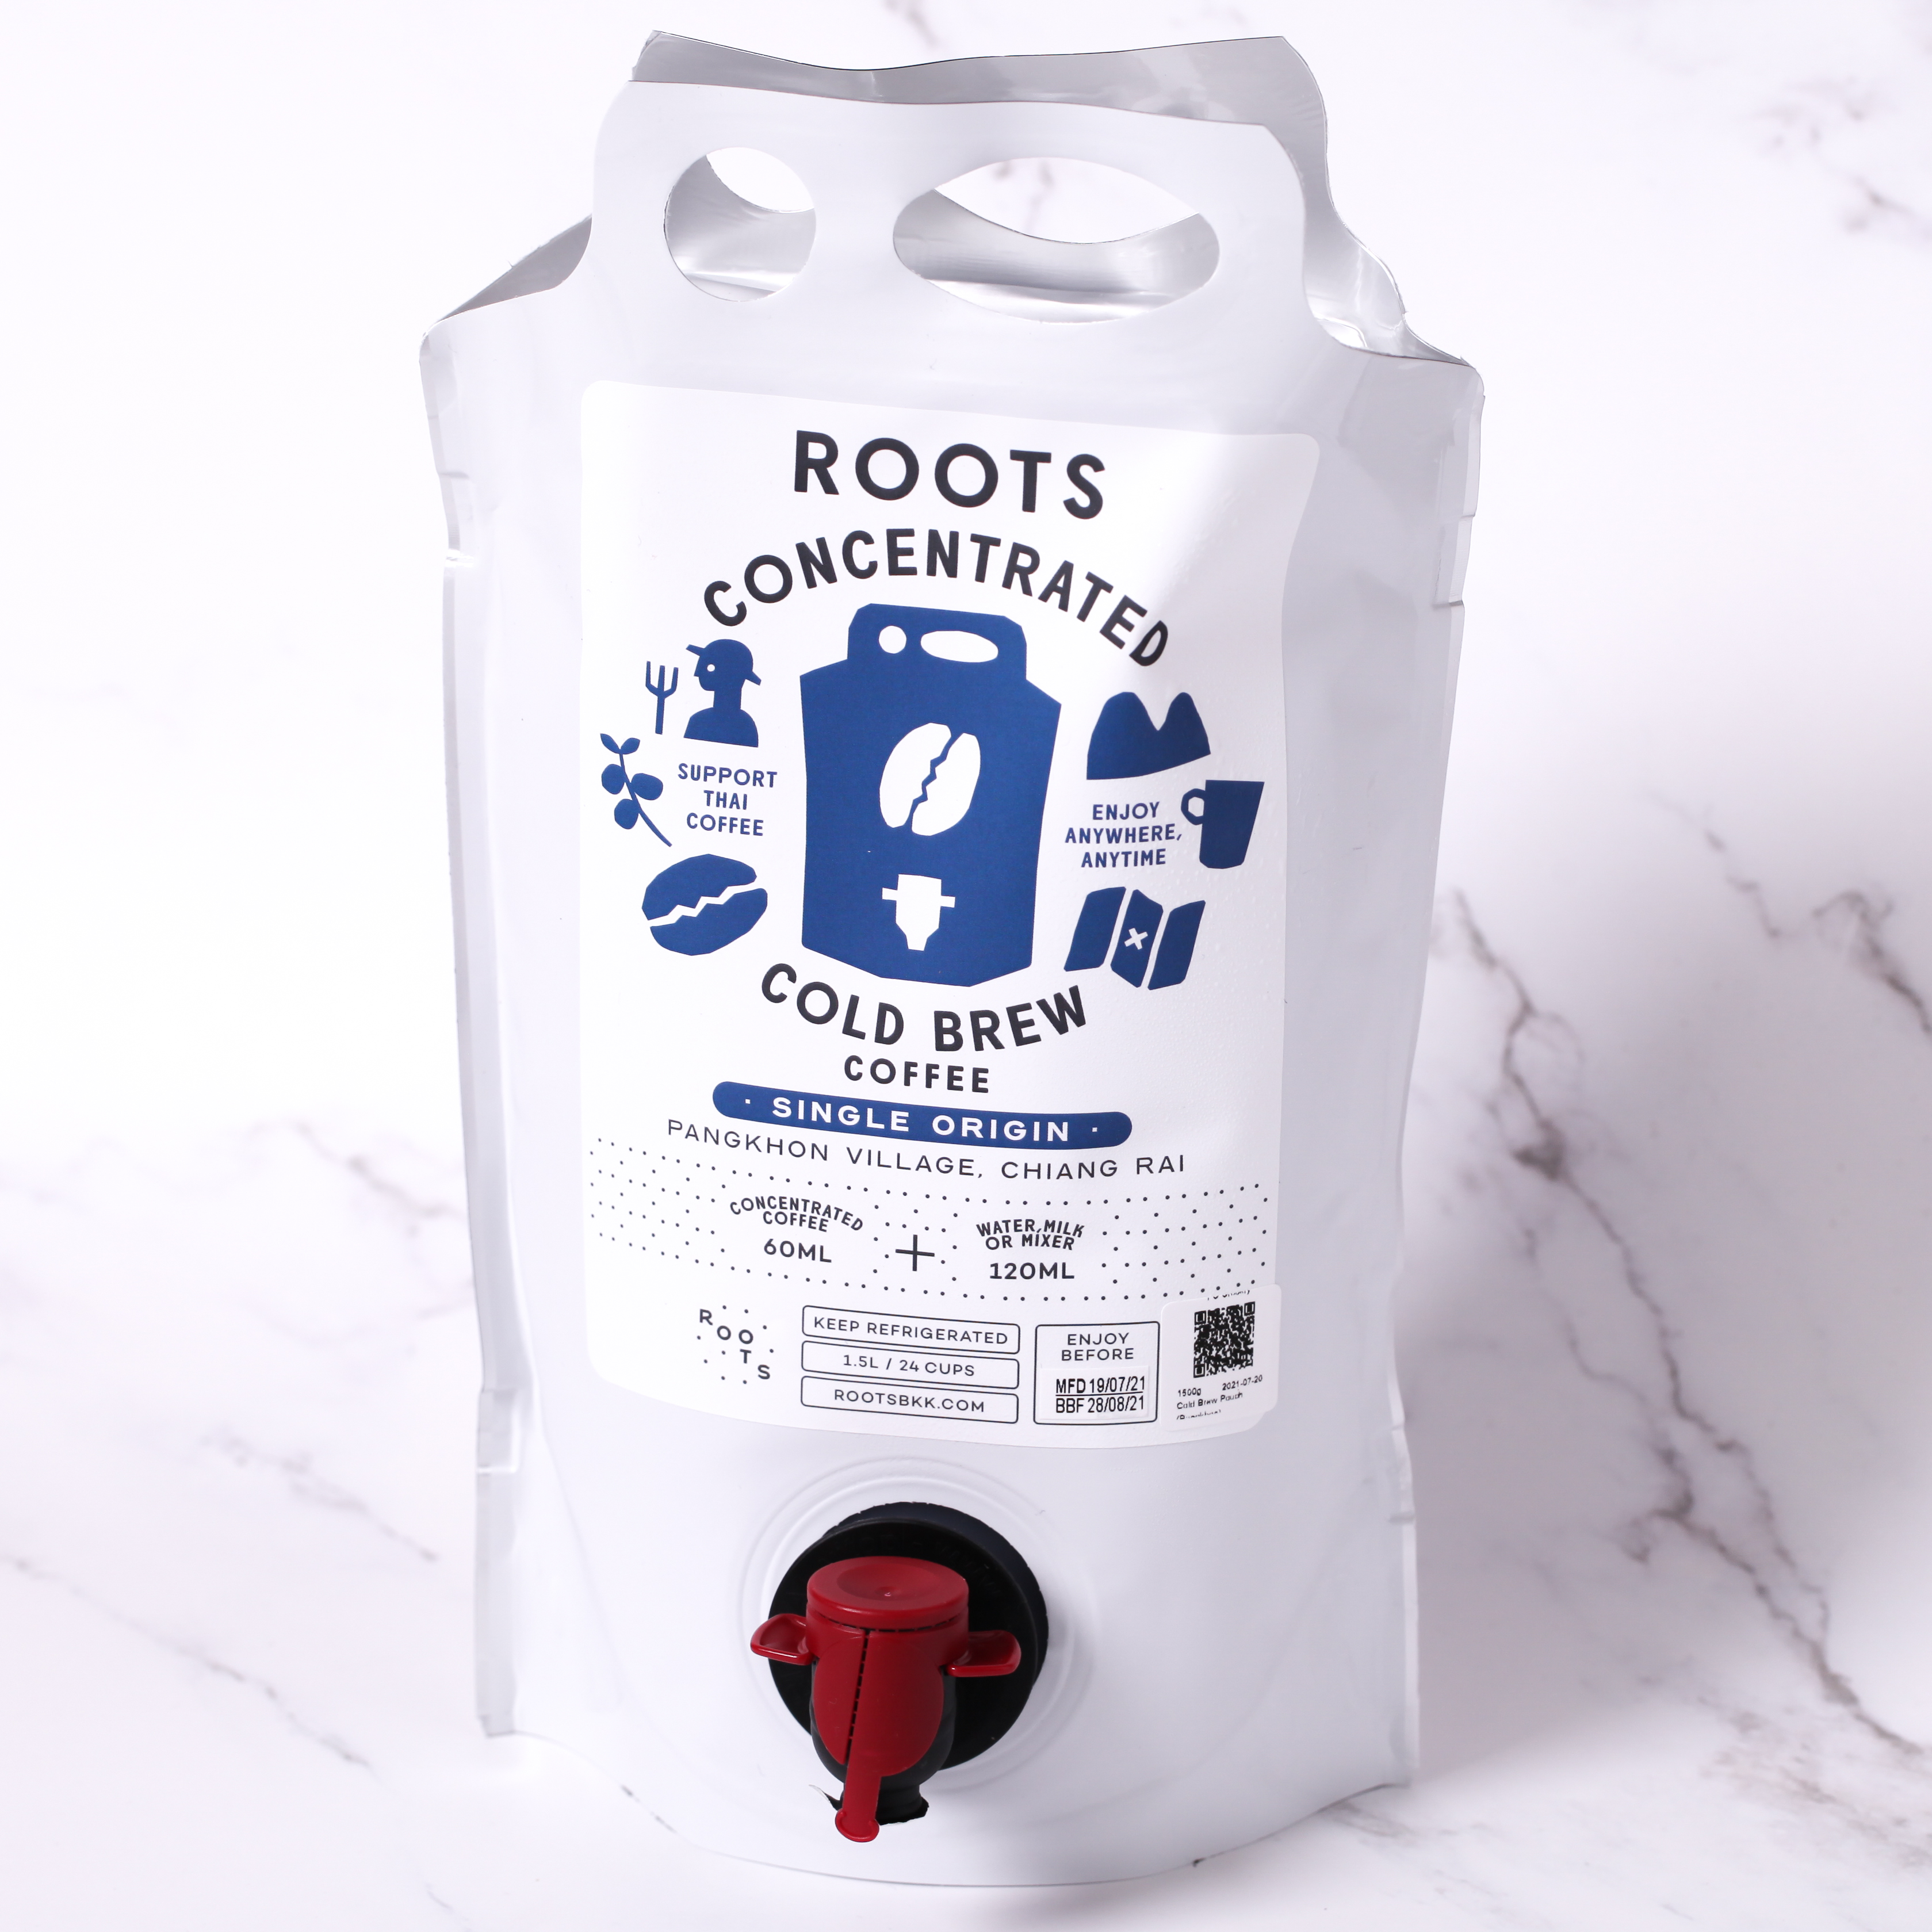 Roots Concentrated Cold Brew Coffee (single origin)